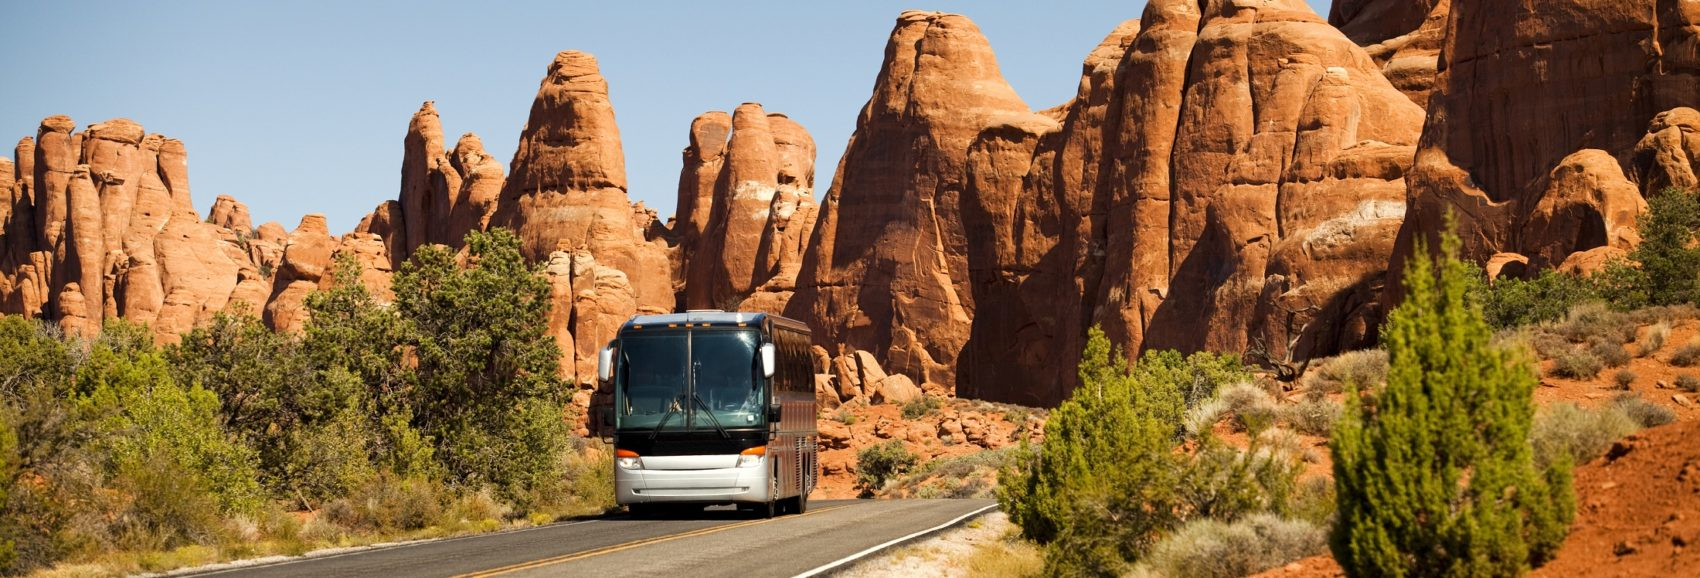 Southwest USA red rock landscape escorted tour in Arches National Park near Moab Utah